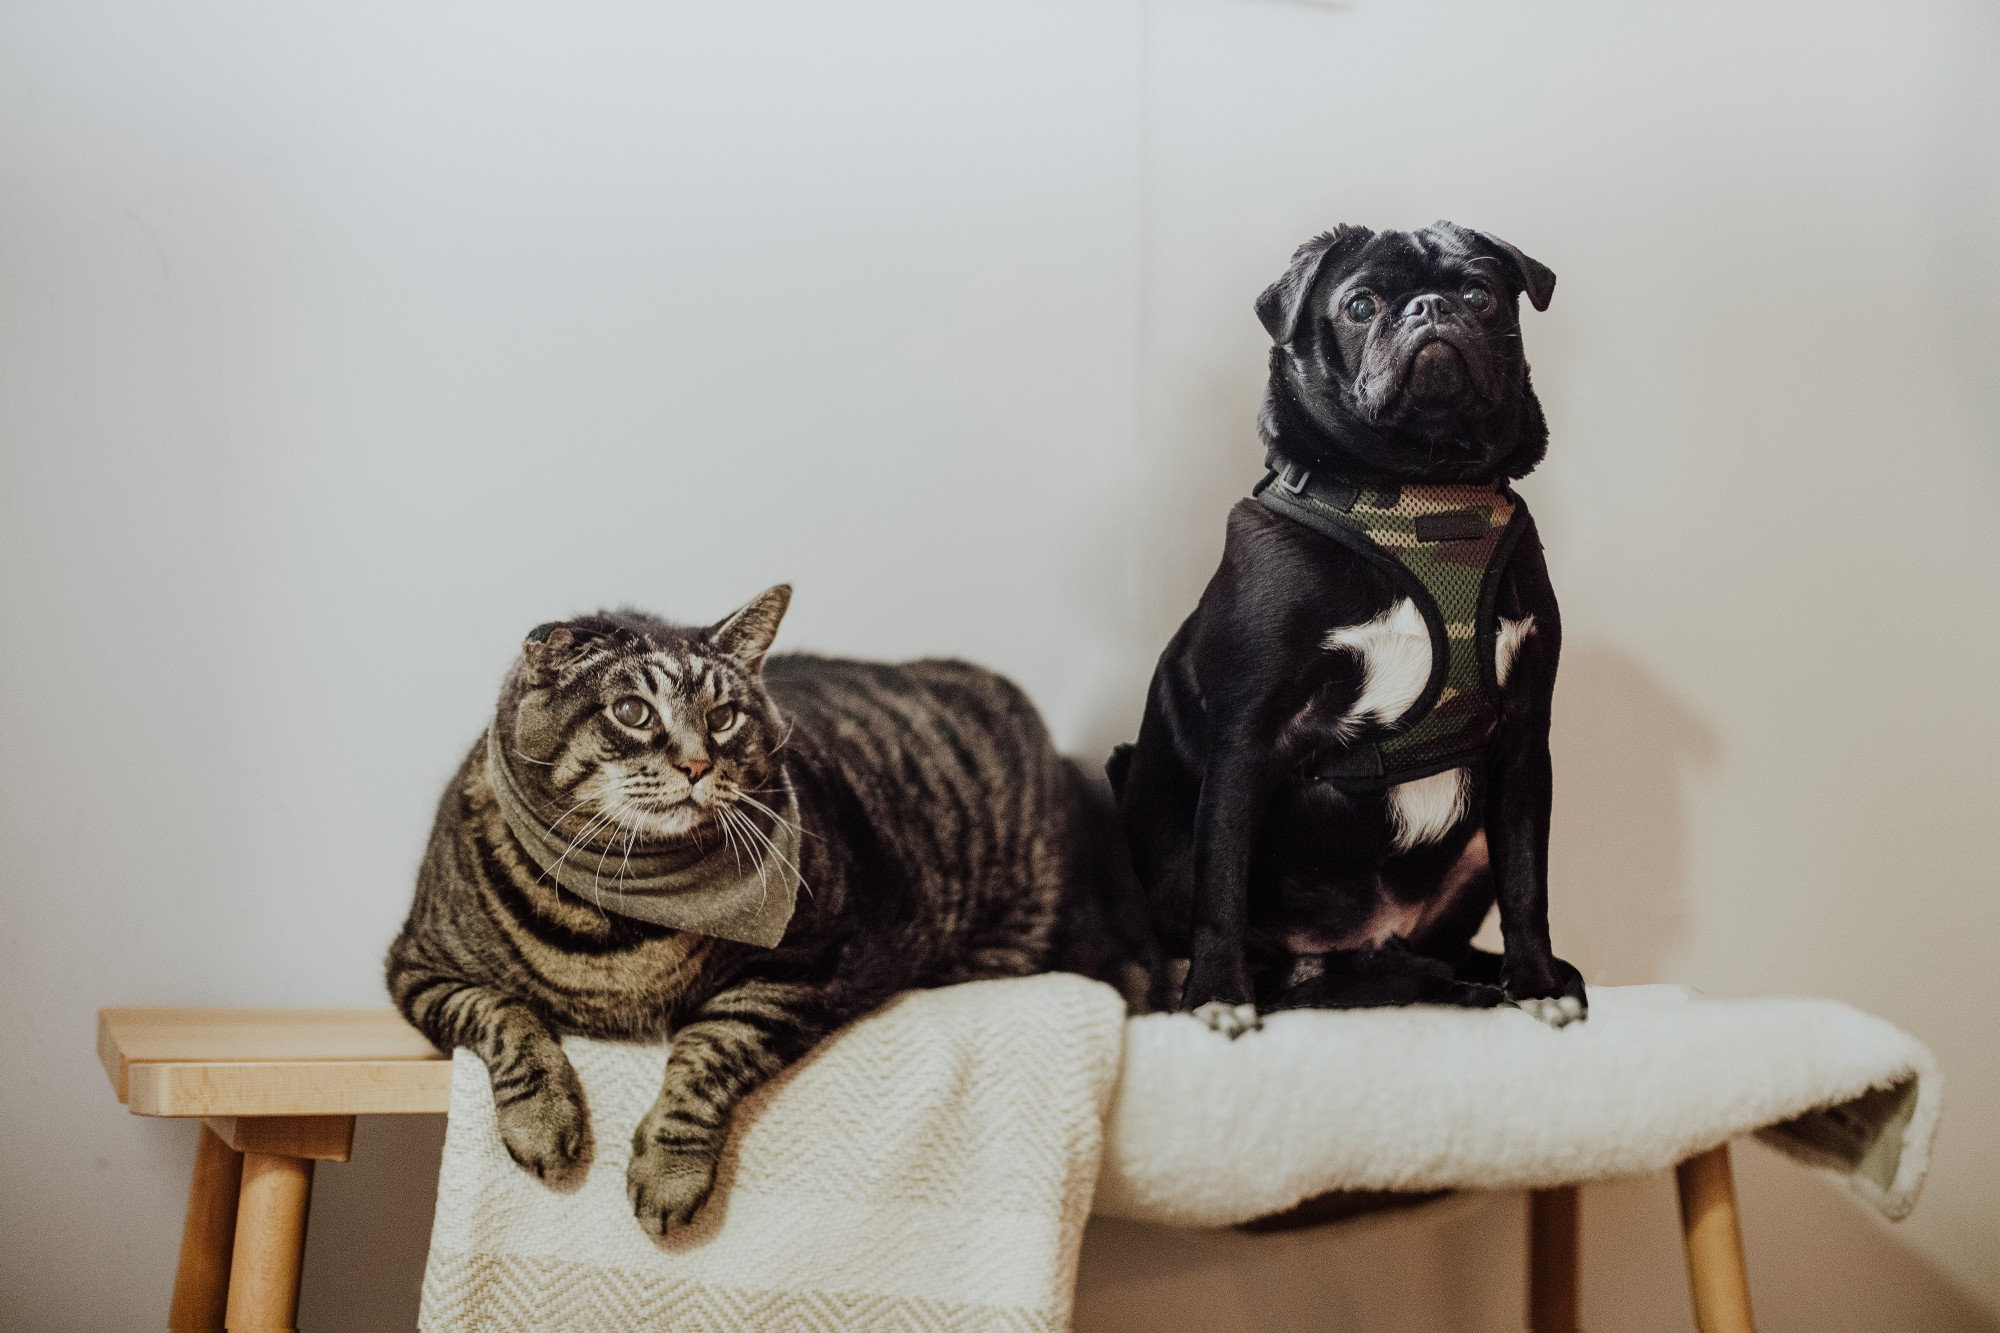 pets on ironing board